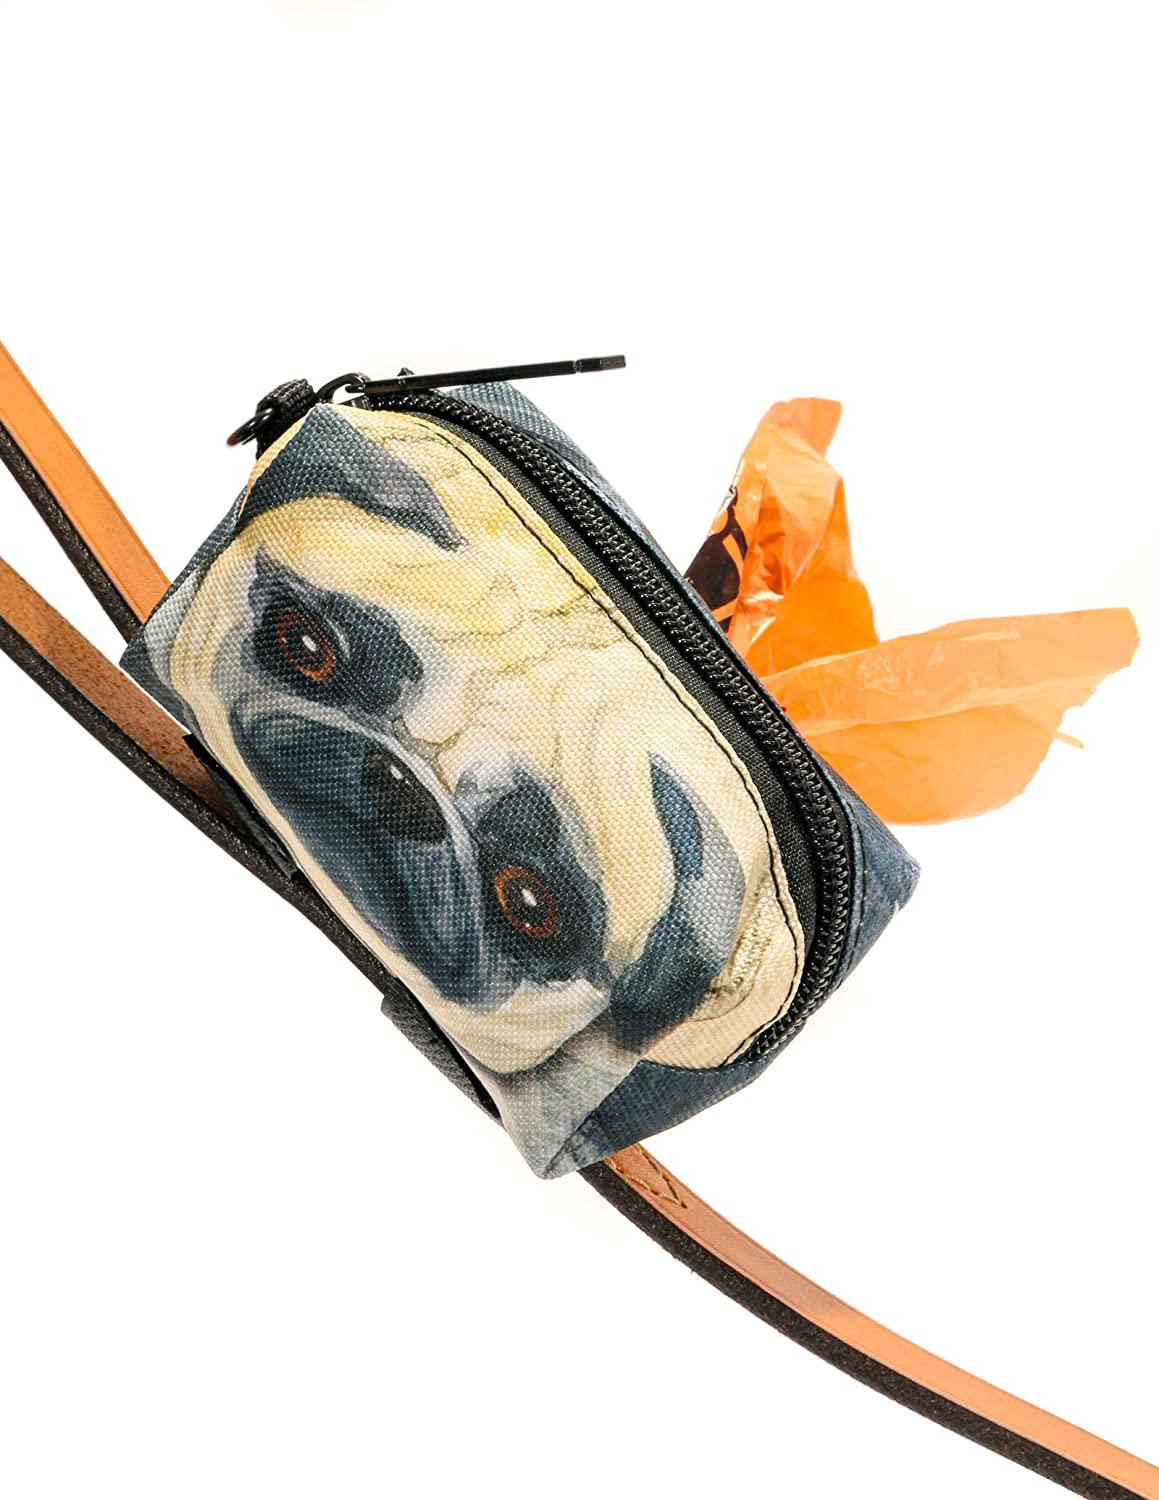 poopyCUTE Doggy Poop Waste Bag Dispenser for Fashionably Cute Owners and All Dog Breeds Luxury Fashion Style INDY Check Red